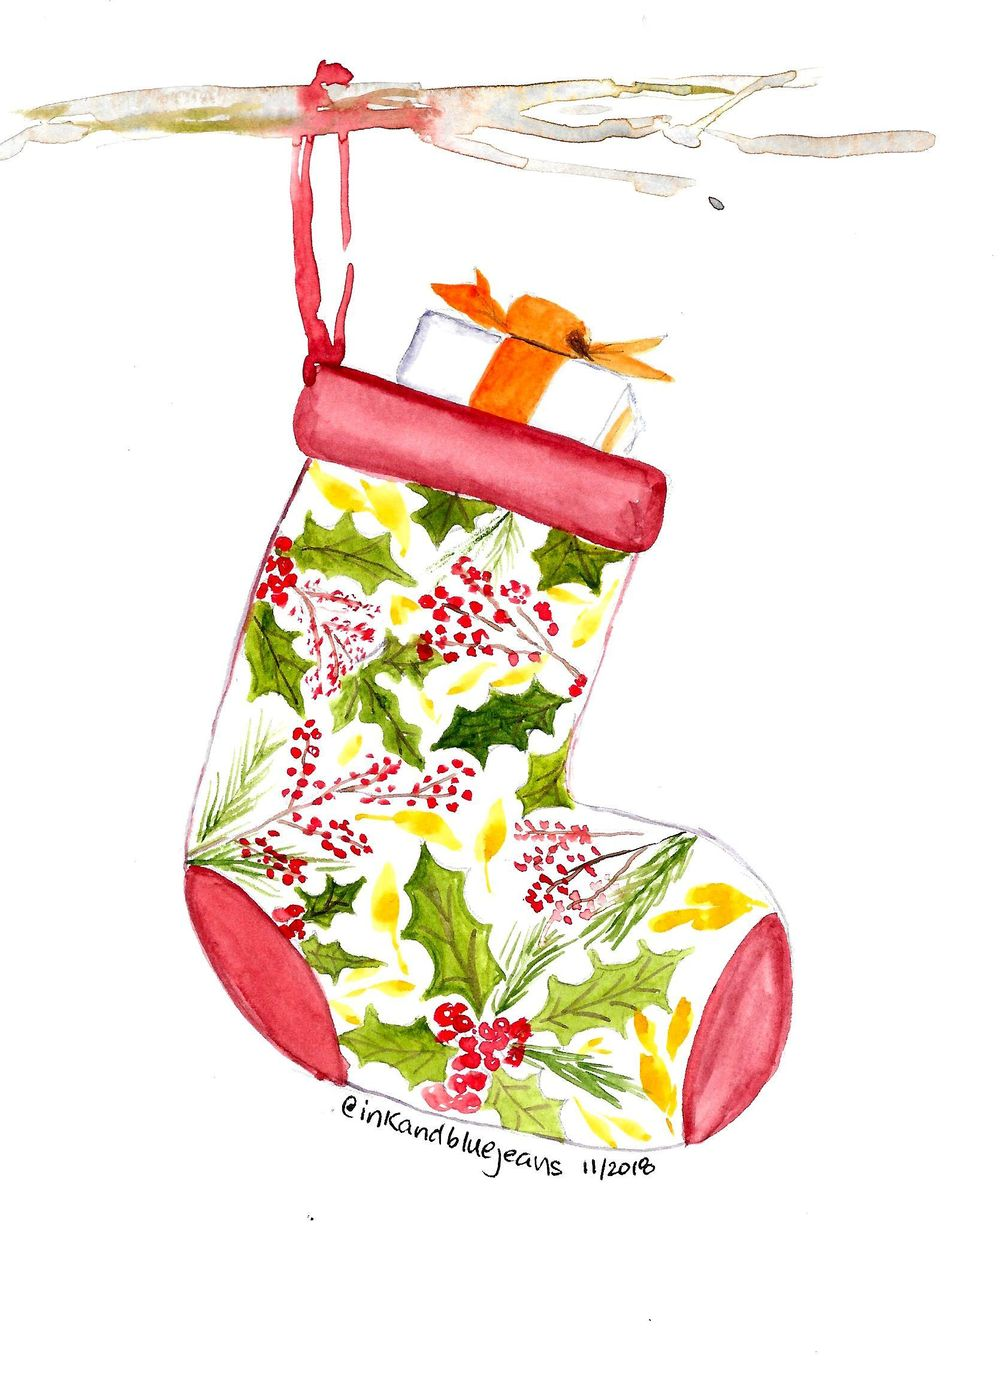 Stuffed Stocking for Christmas - image 1 - student project